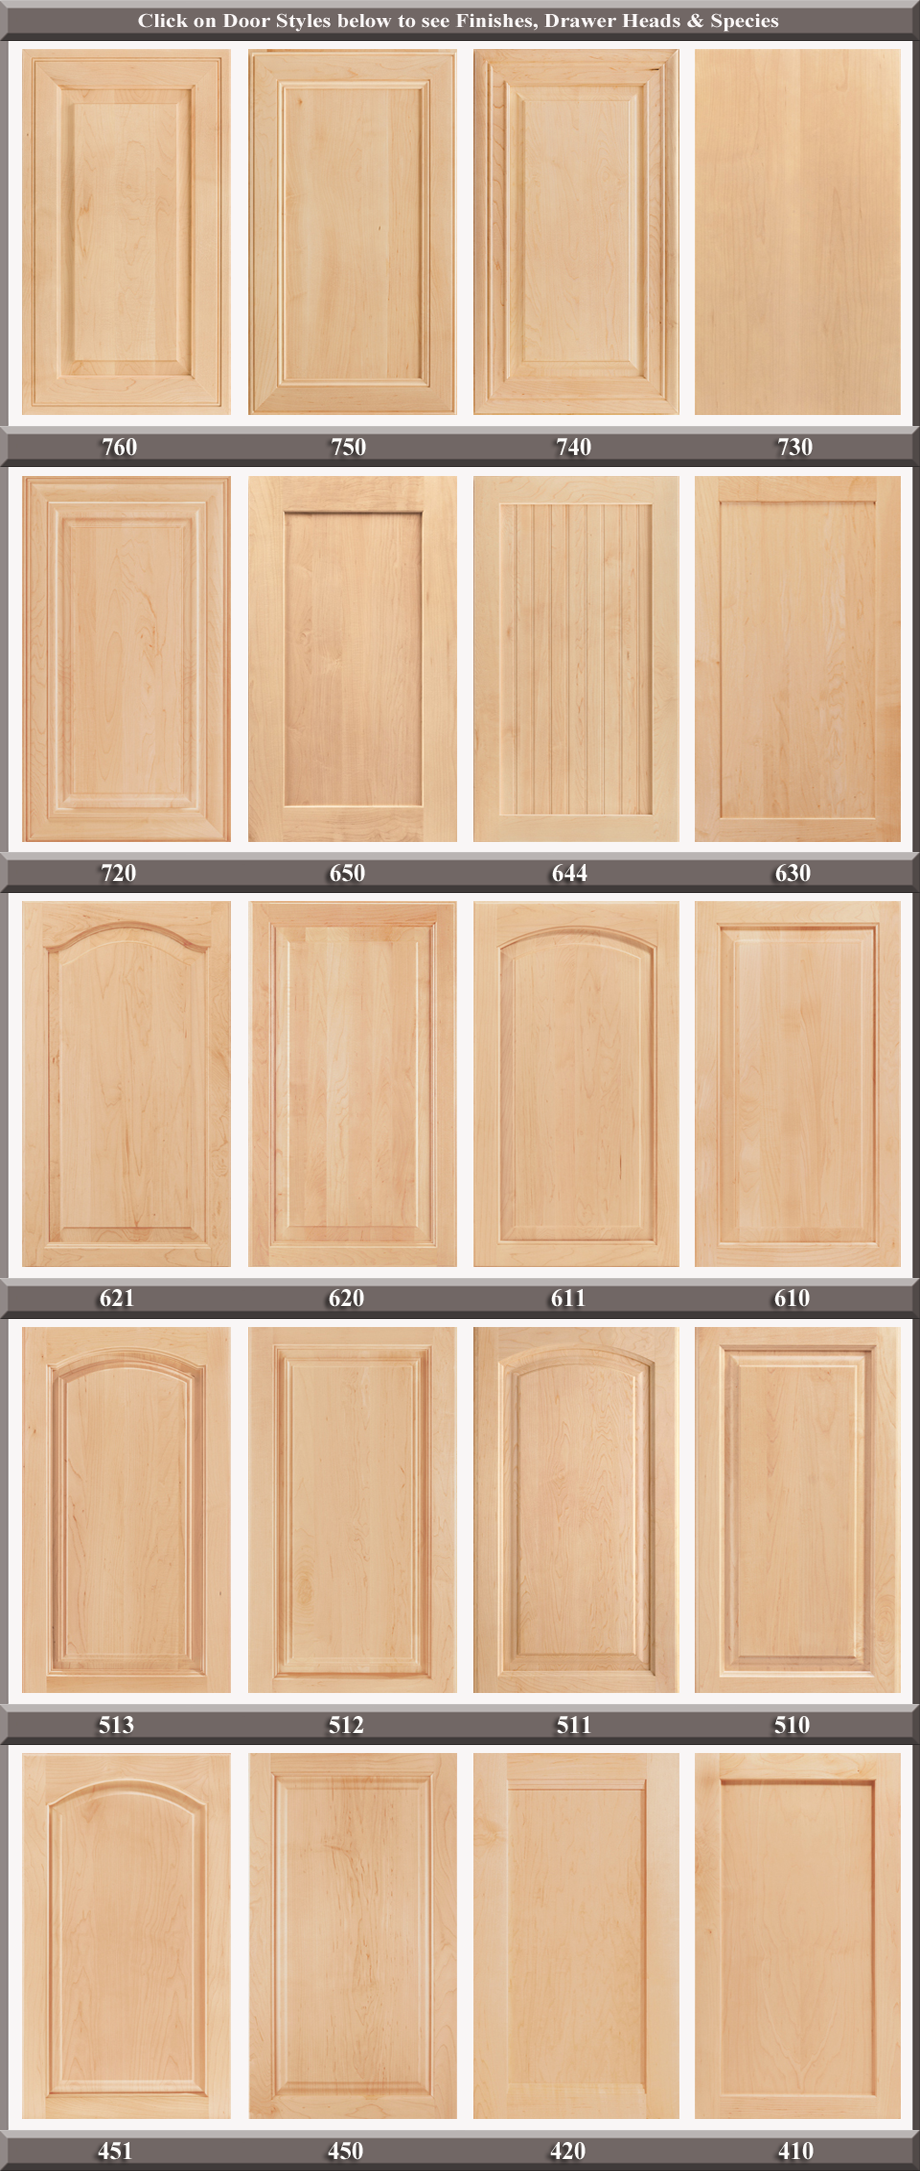 Popular cabinet door styles finishes maryland kitchen cabinets popular cabinet door styles finishes eventshaper